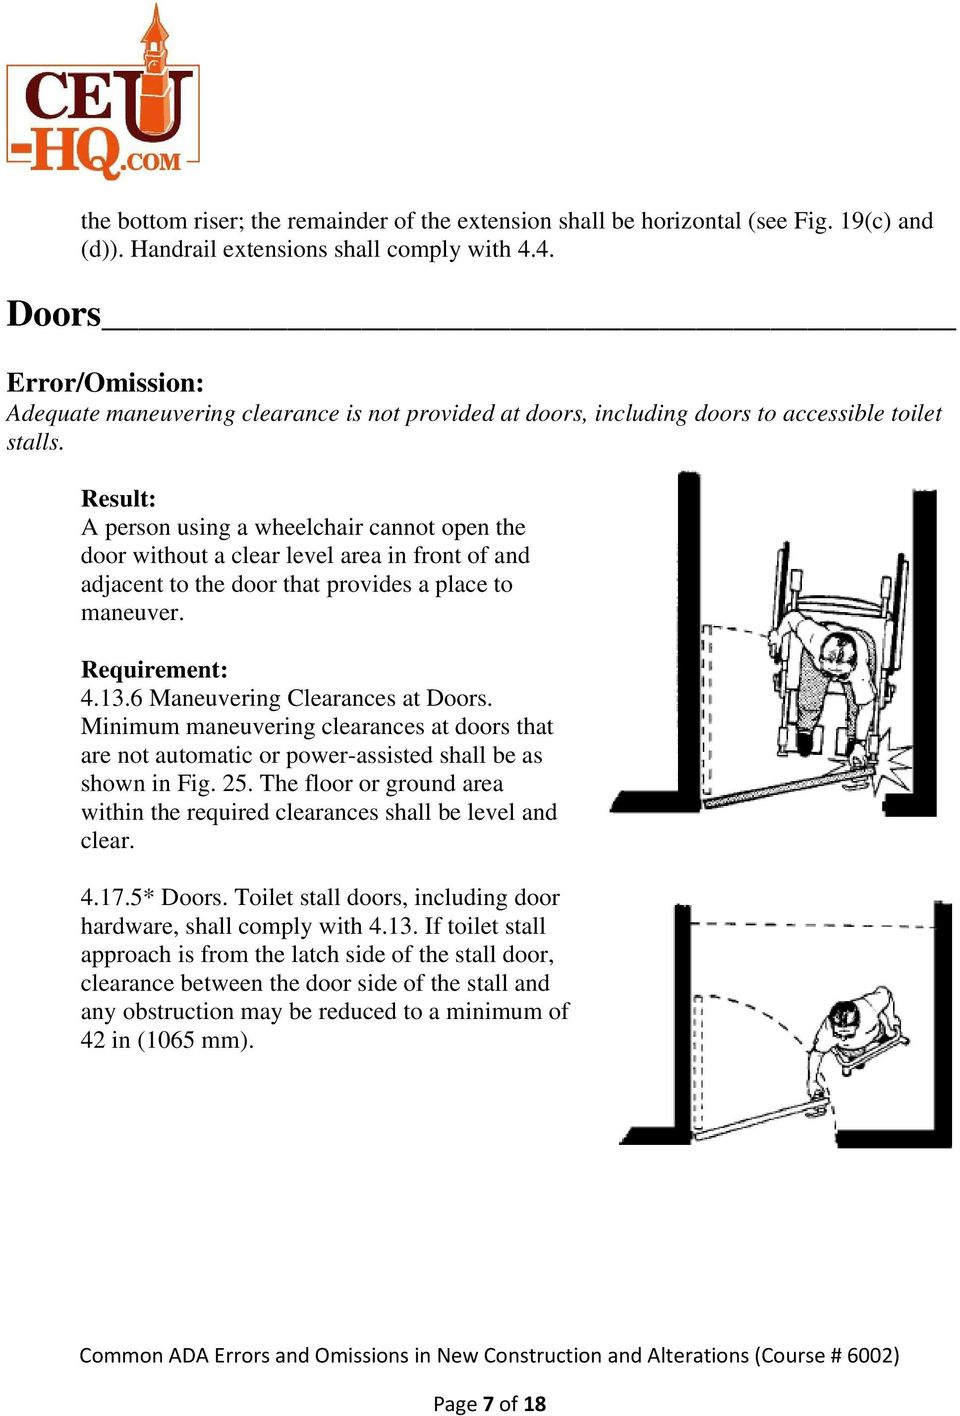 A person using a wheelchair cannot open the door without a clear level area in front of and adjacent to the door that provides a place to maneuver. 4.13.6 Maneuvering Clearances at Doors.